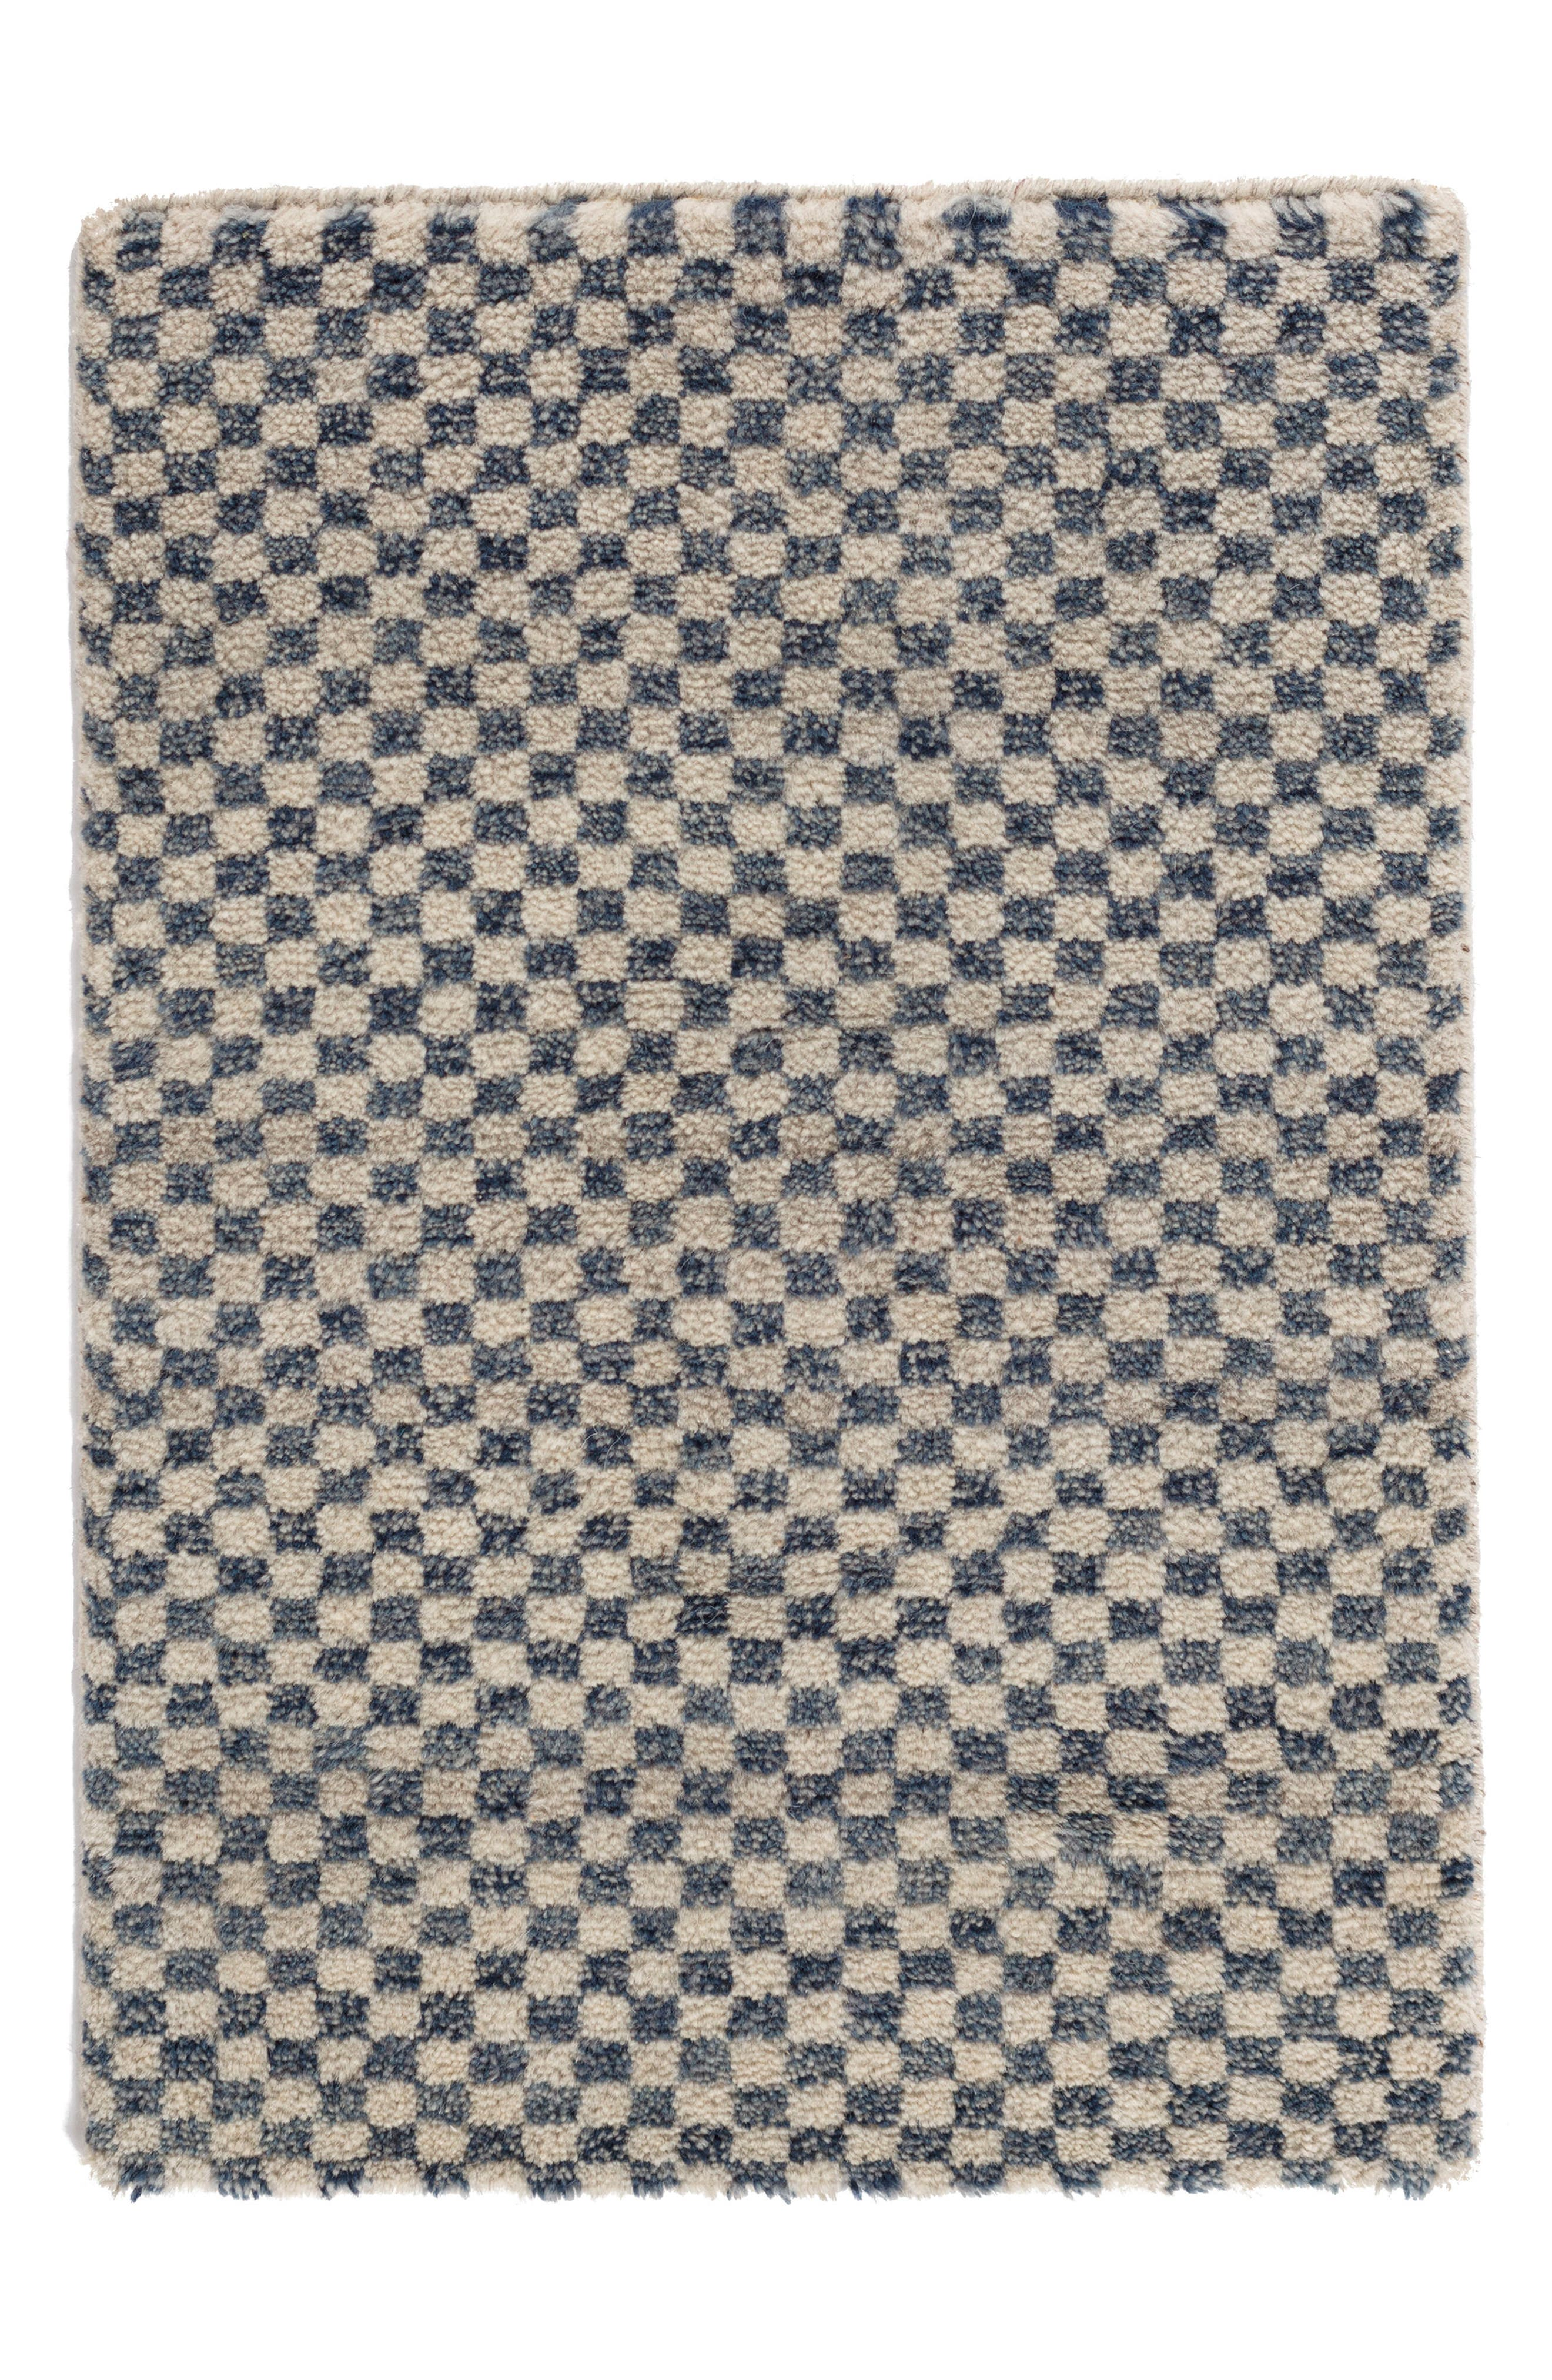 Alternate Image 1 Selected - Dash & Albert Citra Hand Knotted Rug